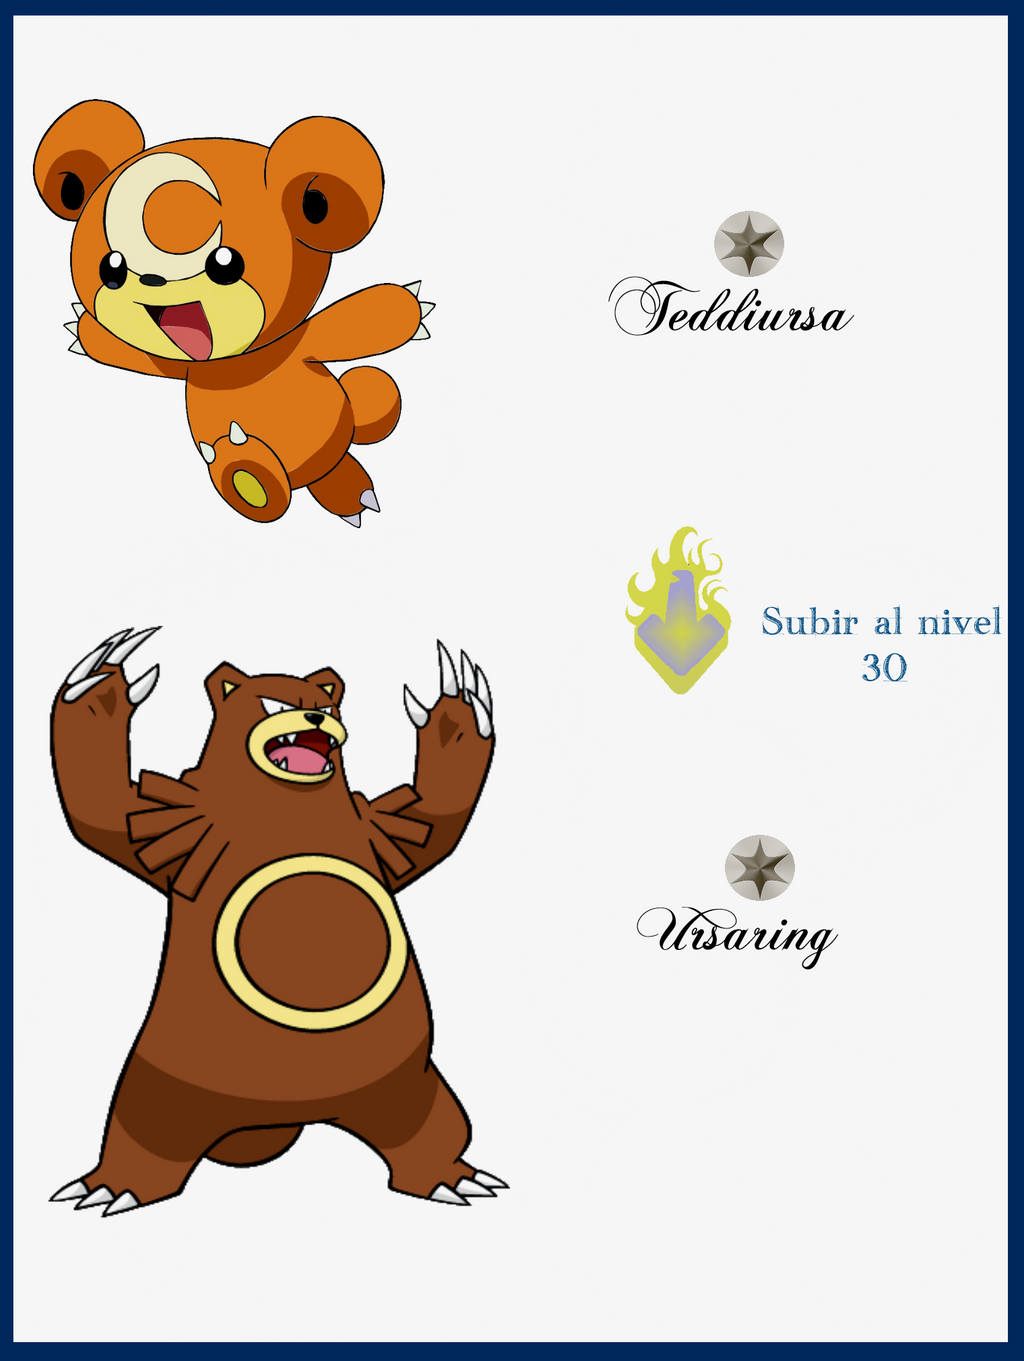 105 Teddiursa Evoluciones by Maxconnery on DeviantArt